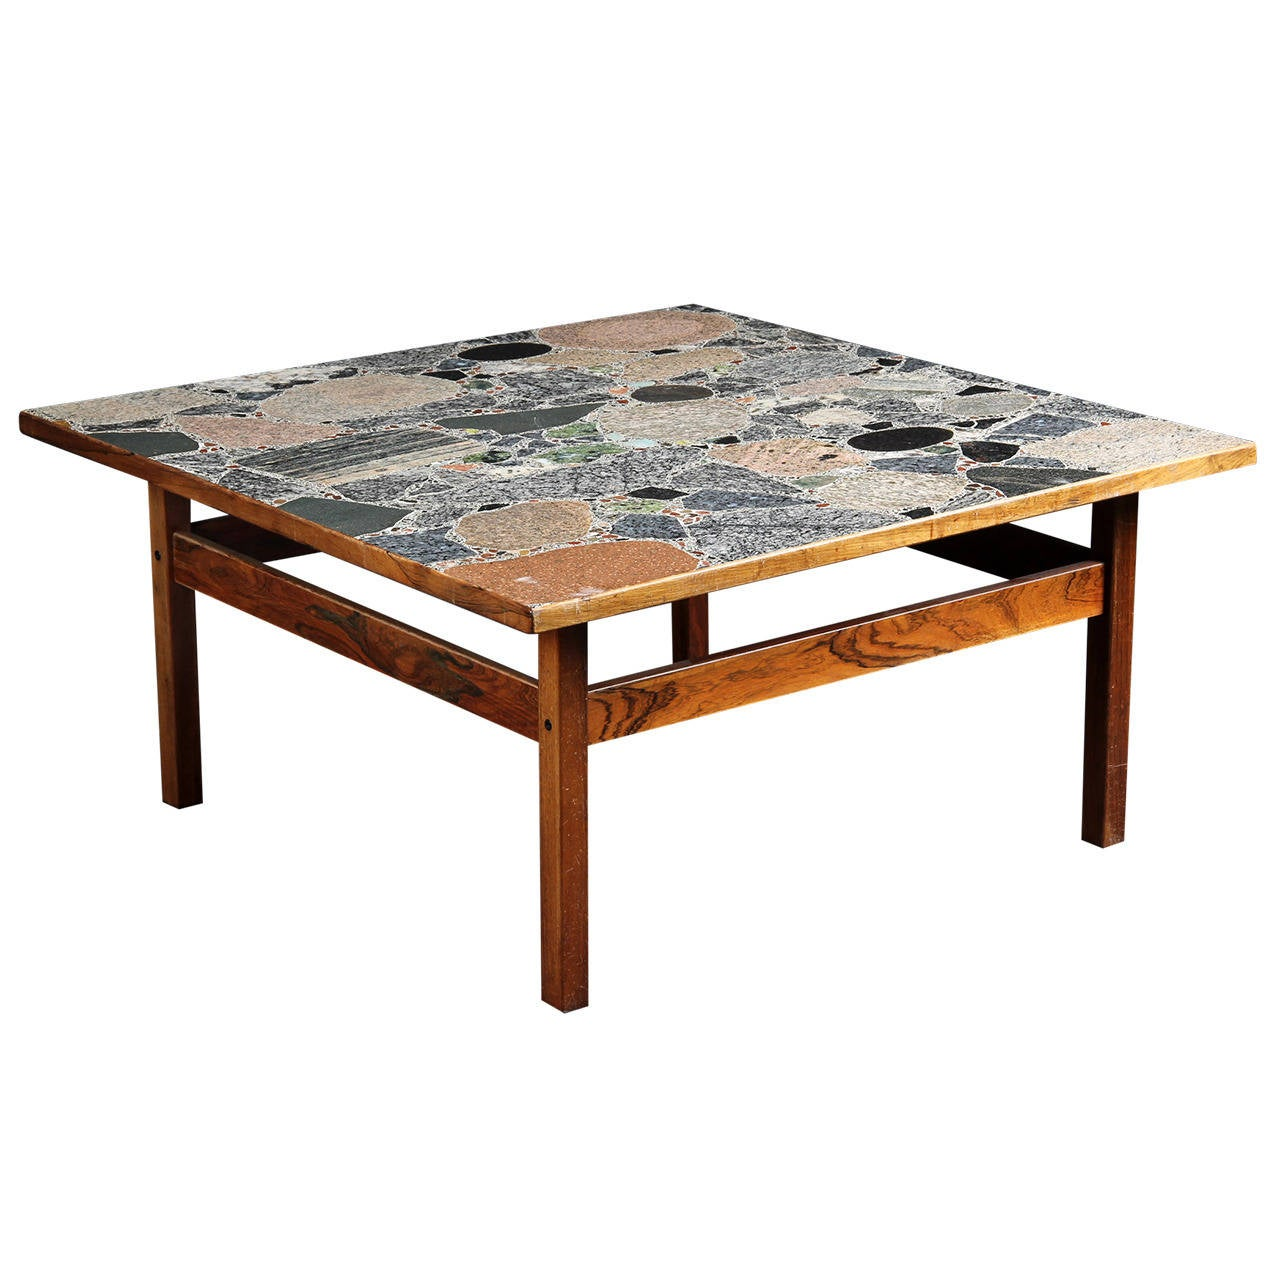 Marble Coffee Table Large: Danish Large-Scale Rosewood Coffee Or Low Table With